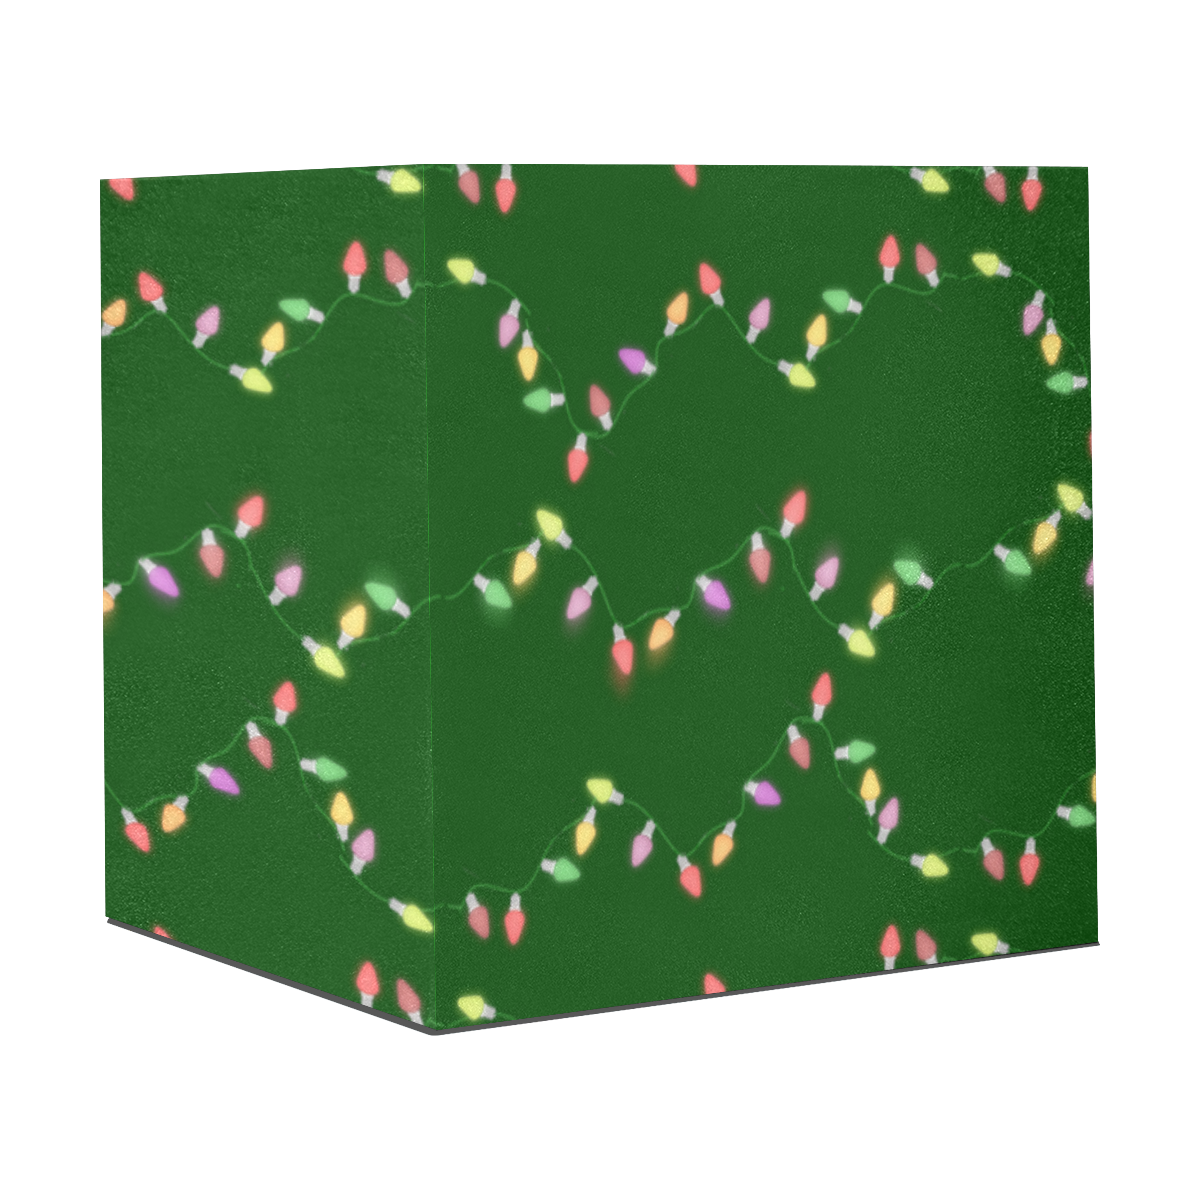 "Festive Christmas Lights on Green Gift Wrapping Paper 58""x 23"" (5 Rolls)"